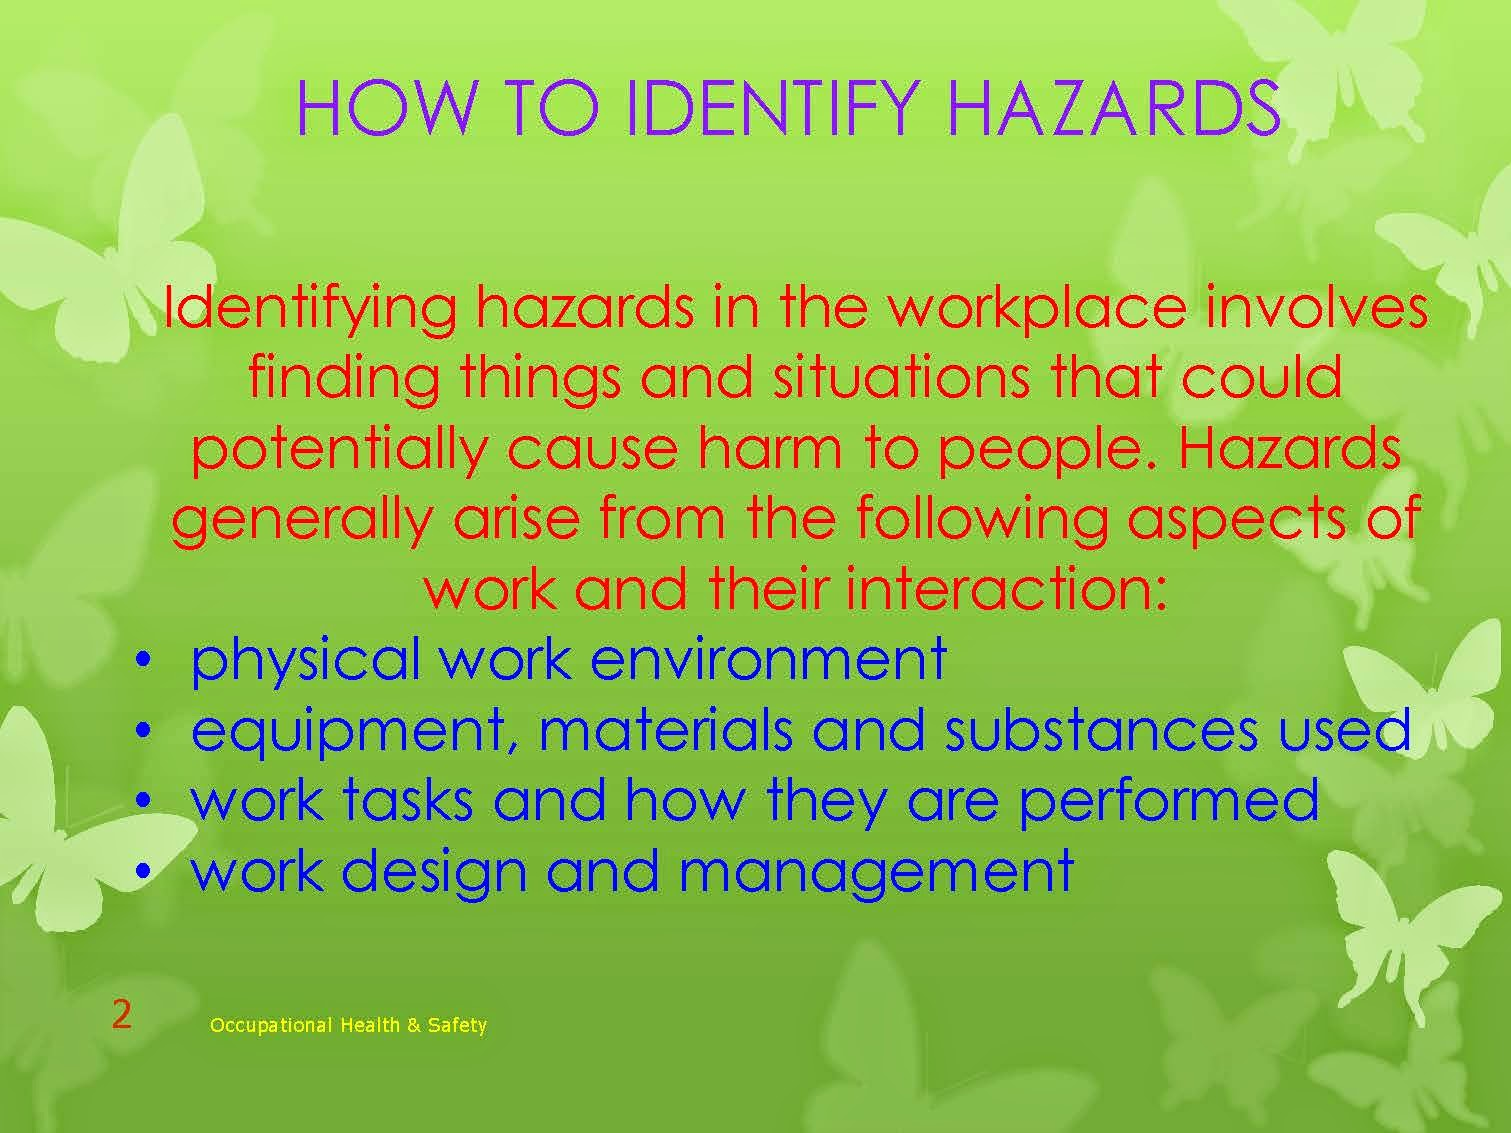 identifying hazards in the workplace construction essay Hazard identification and risk analysis (hira) is a collective term that encompasses all activities involved in identifying hazards and evaluating risk at facilities, throughout their life cycle, to make certain that risks to employees, the public, or the environment are consistently controlled within the organization's risk tolerance.